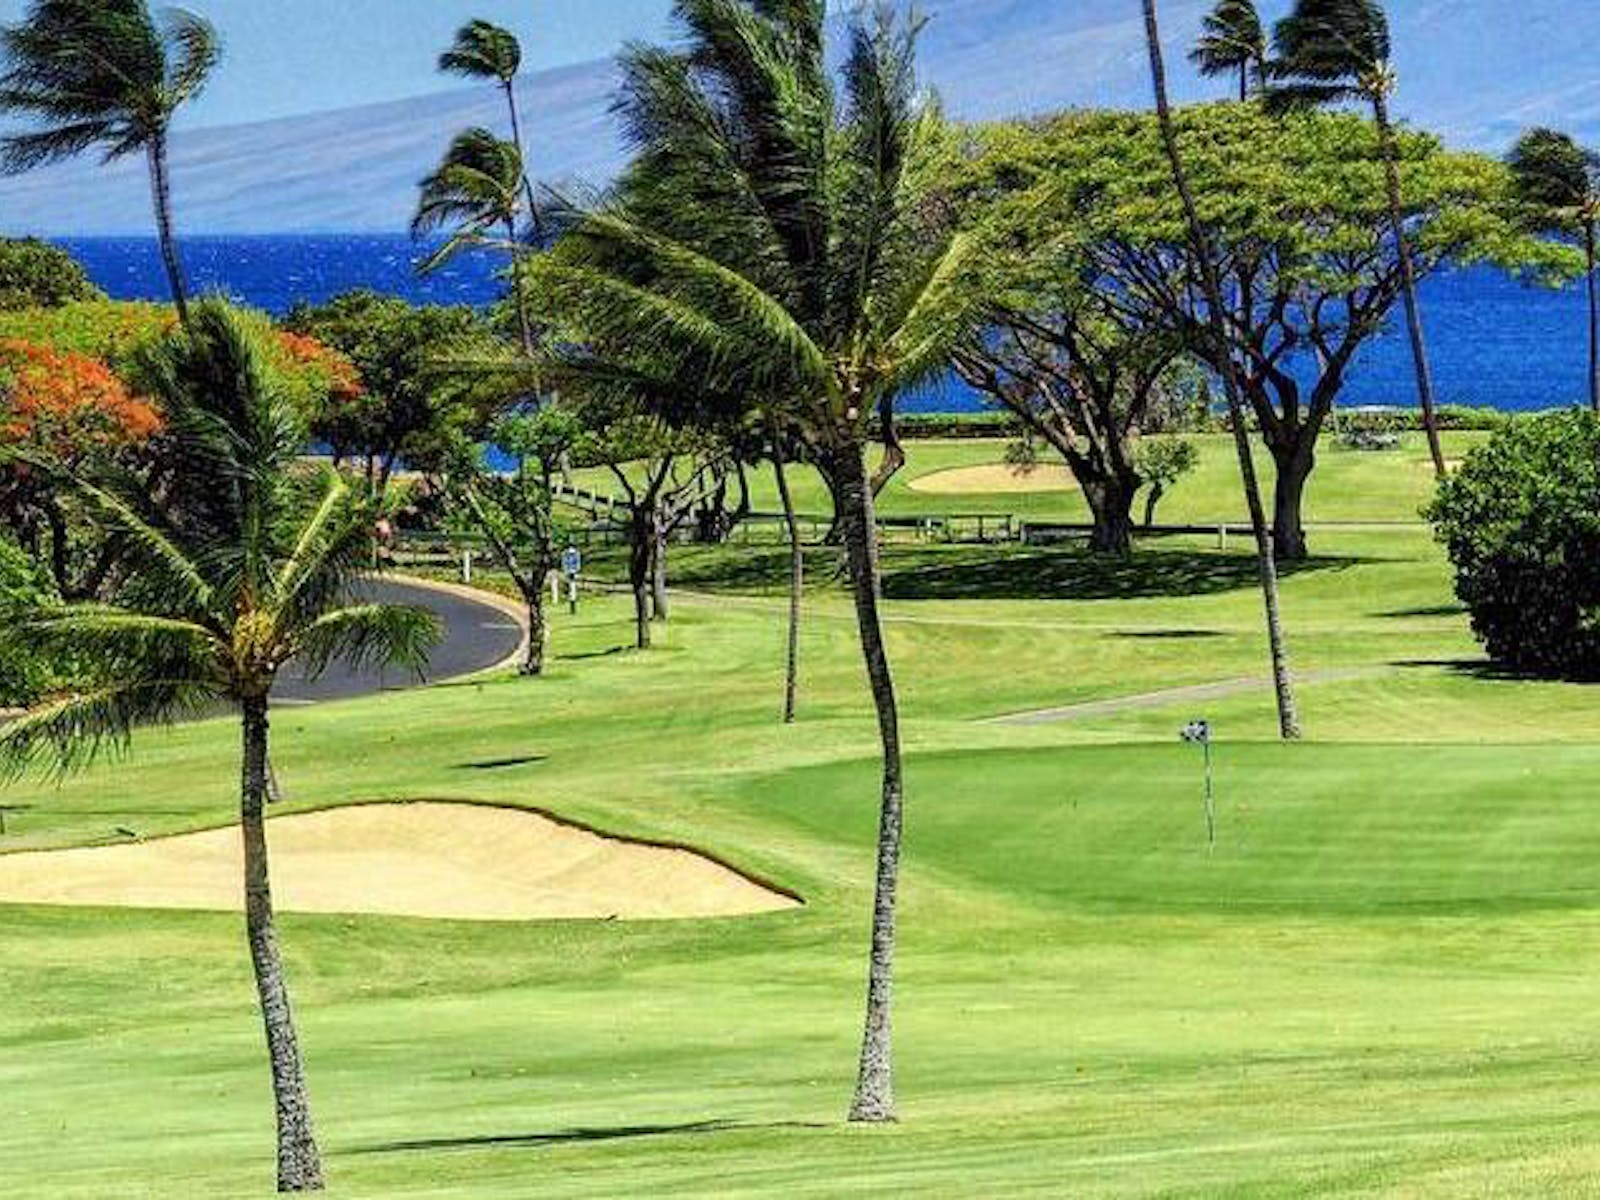 Golf course in Maui, HI